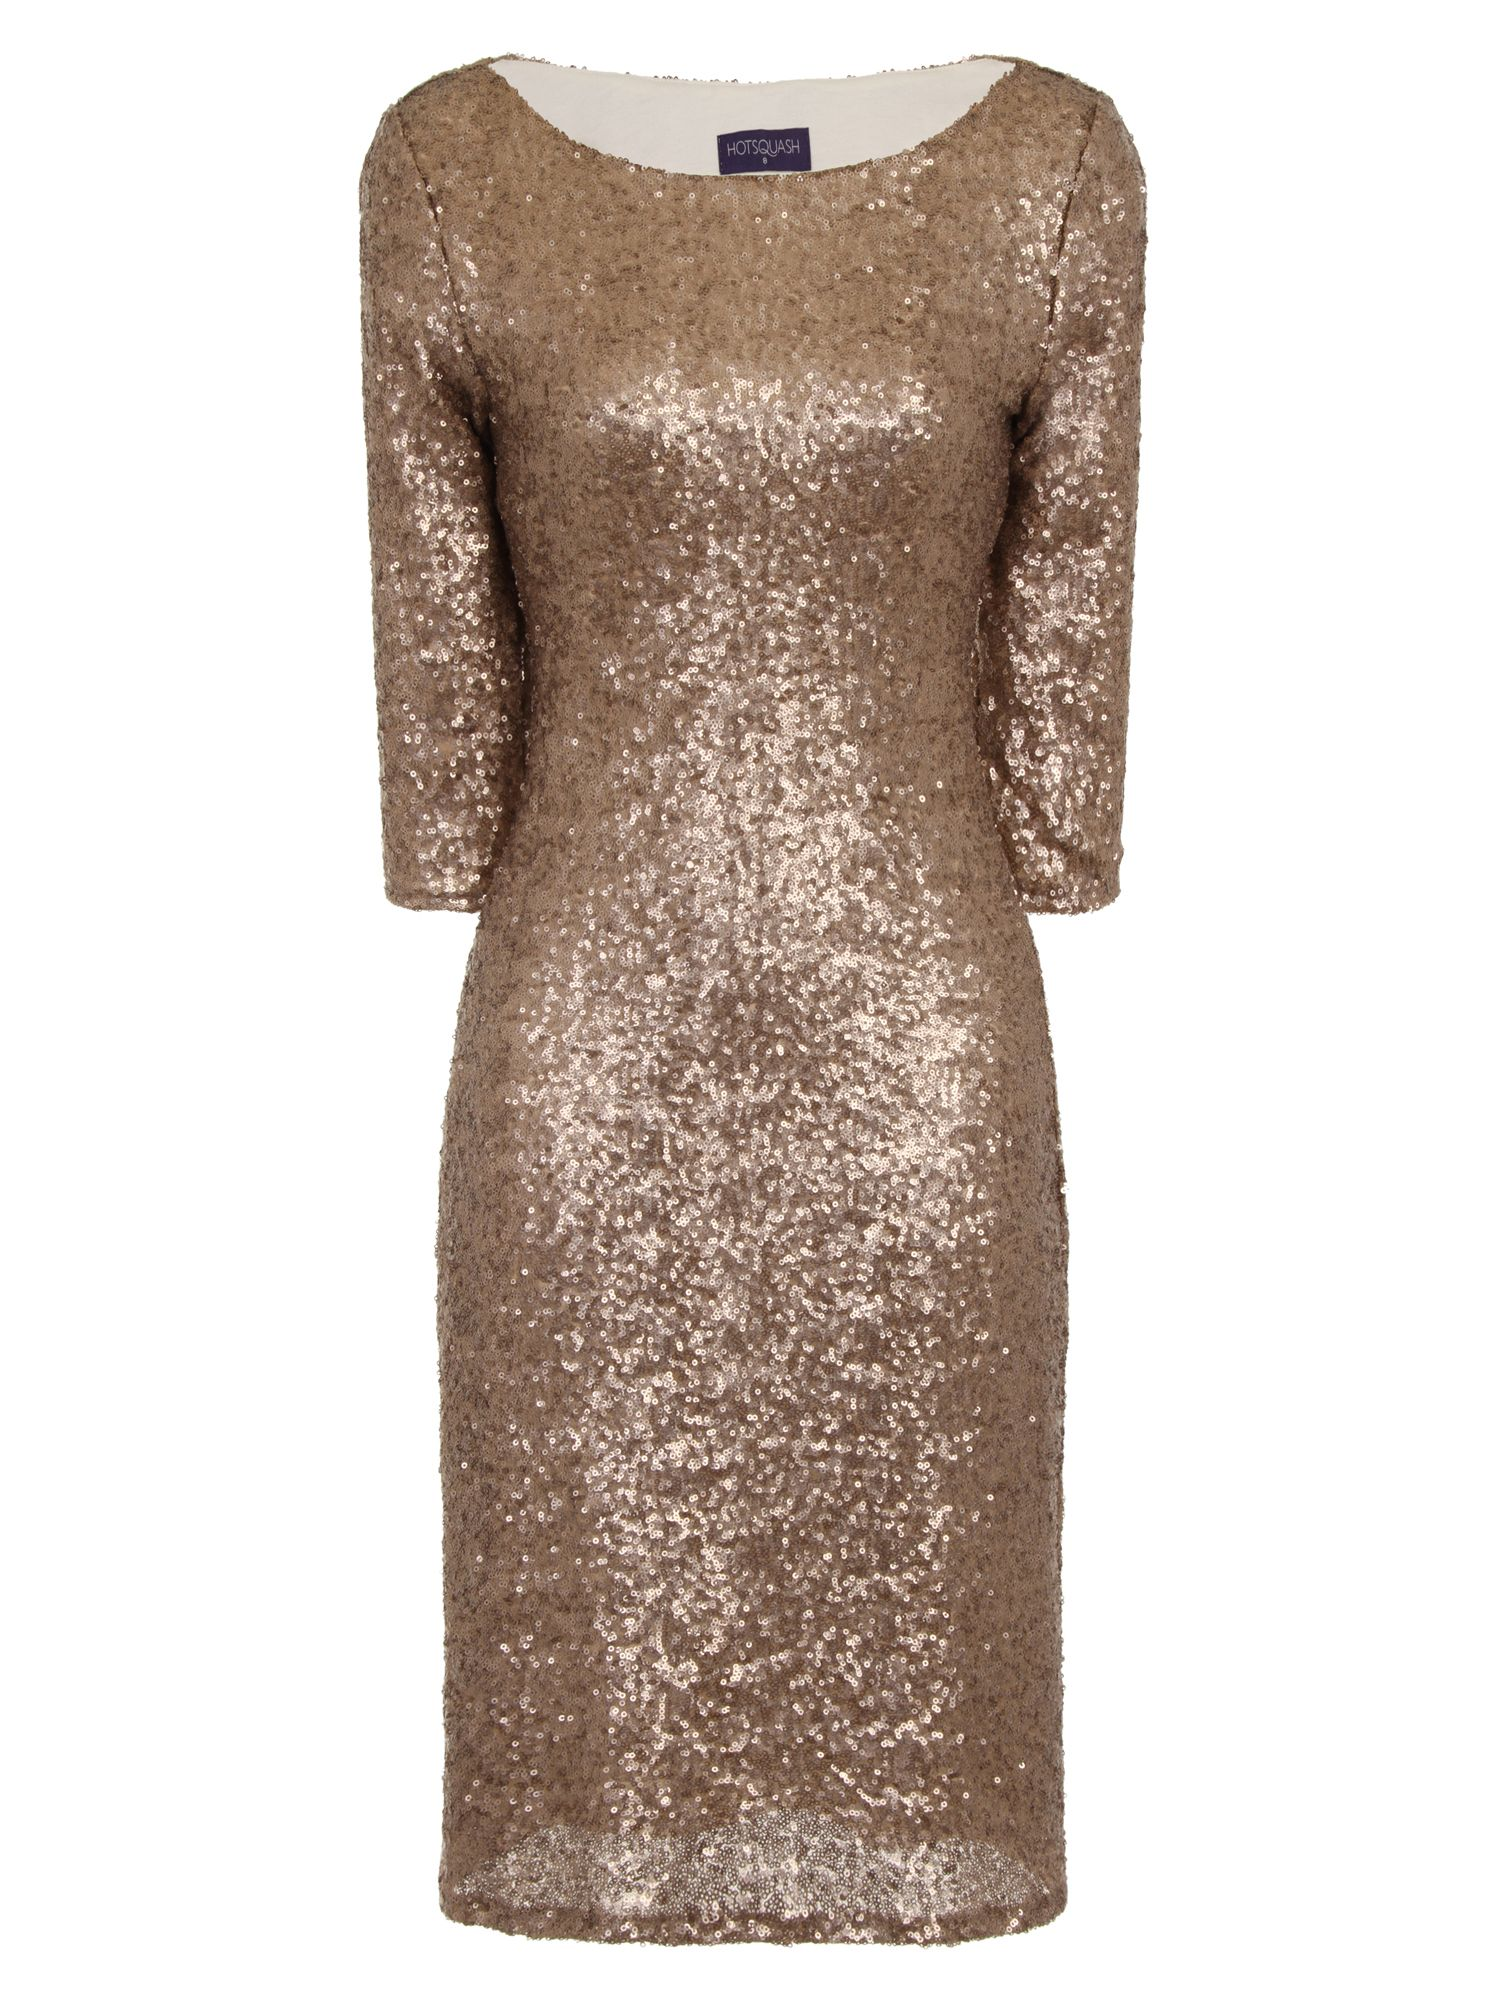 HotSquash Long Sleeved Dress With Sequin Trim, Gold Silverlic